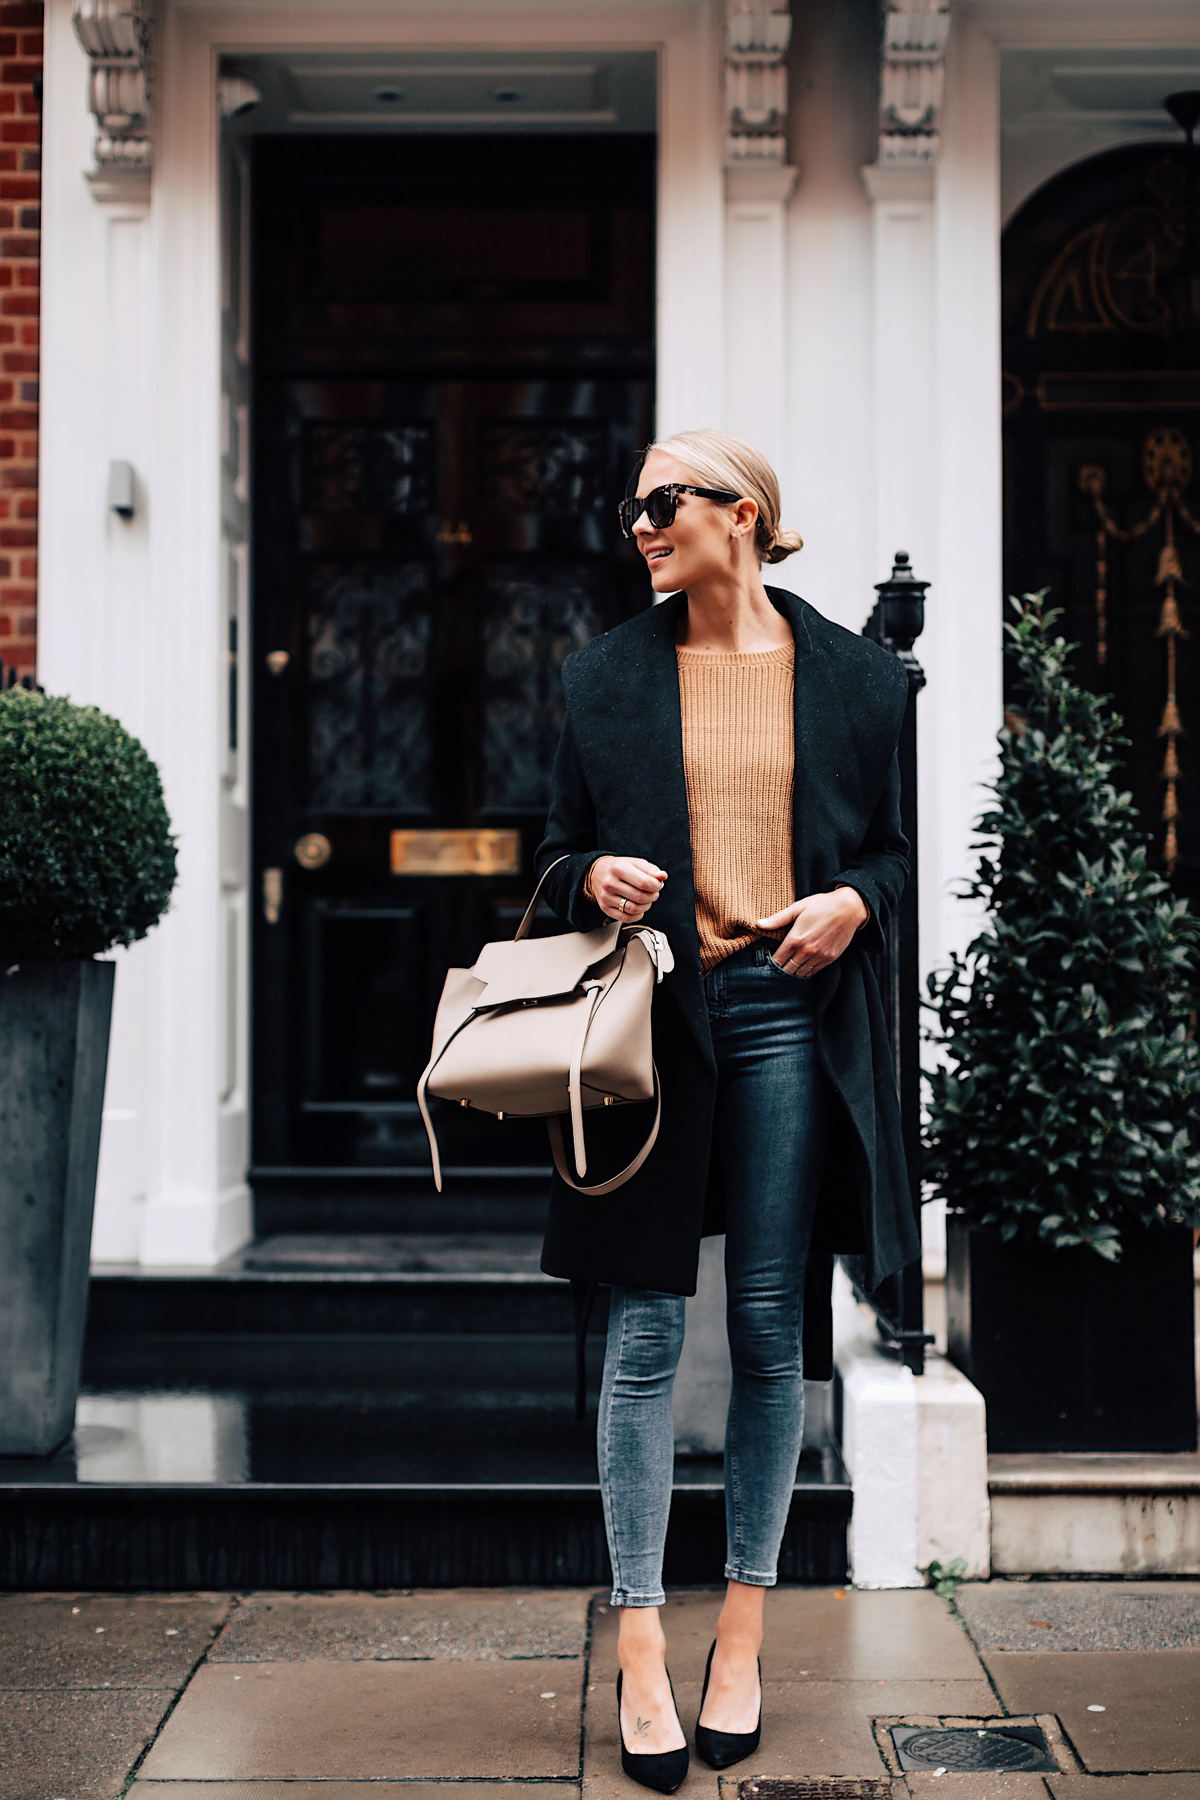 Blonde Woman Wearing Ann Taylor Black Wrap Coat Camel Sweater Denim Skinny Jeans Outfit Black Pumps Celine Mini Belt Bag Fashion Jackson San Diego Fashion Blogger London Street Style